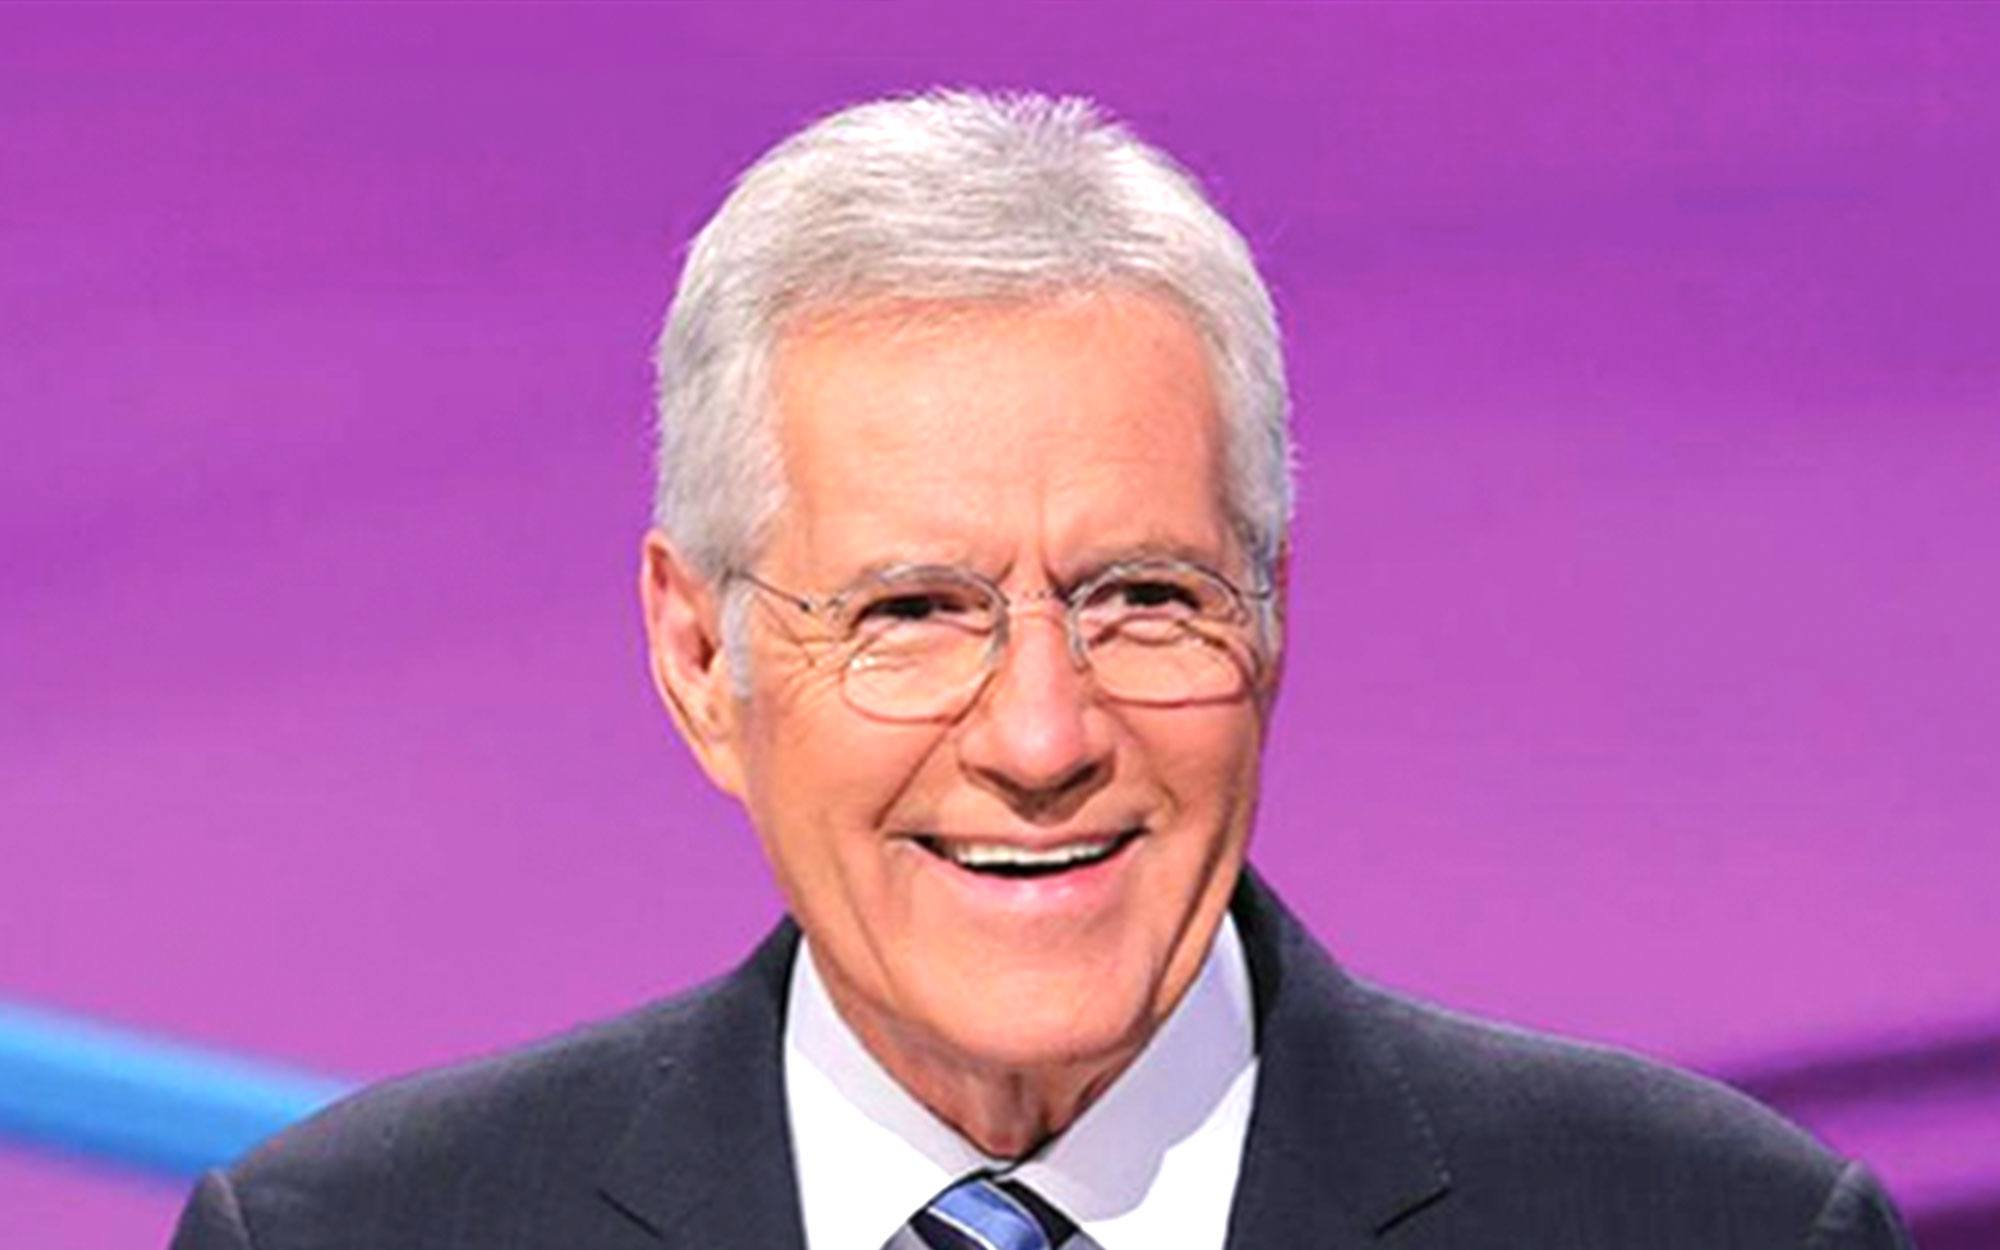 Alex Trebek of 'Jeopardy' Says He's 'Nearing End' of His Life After Cancer Fight